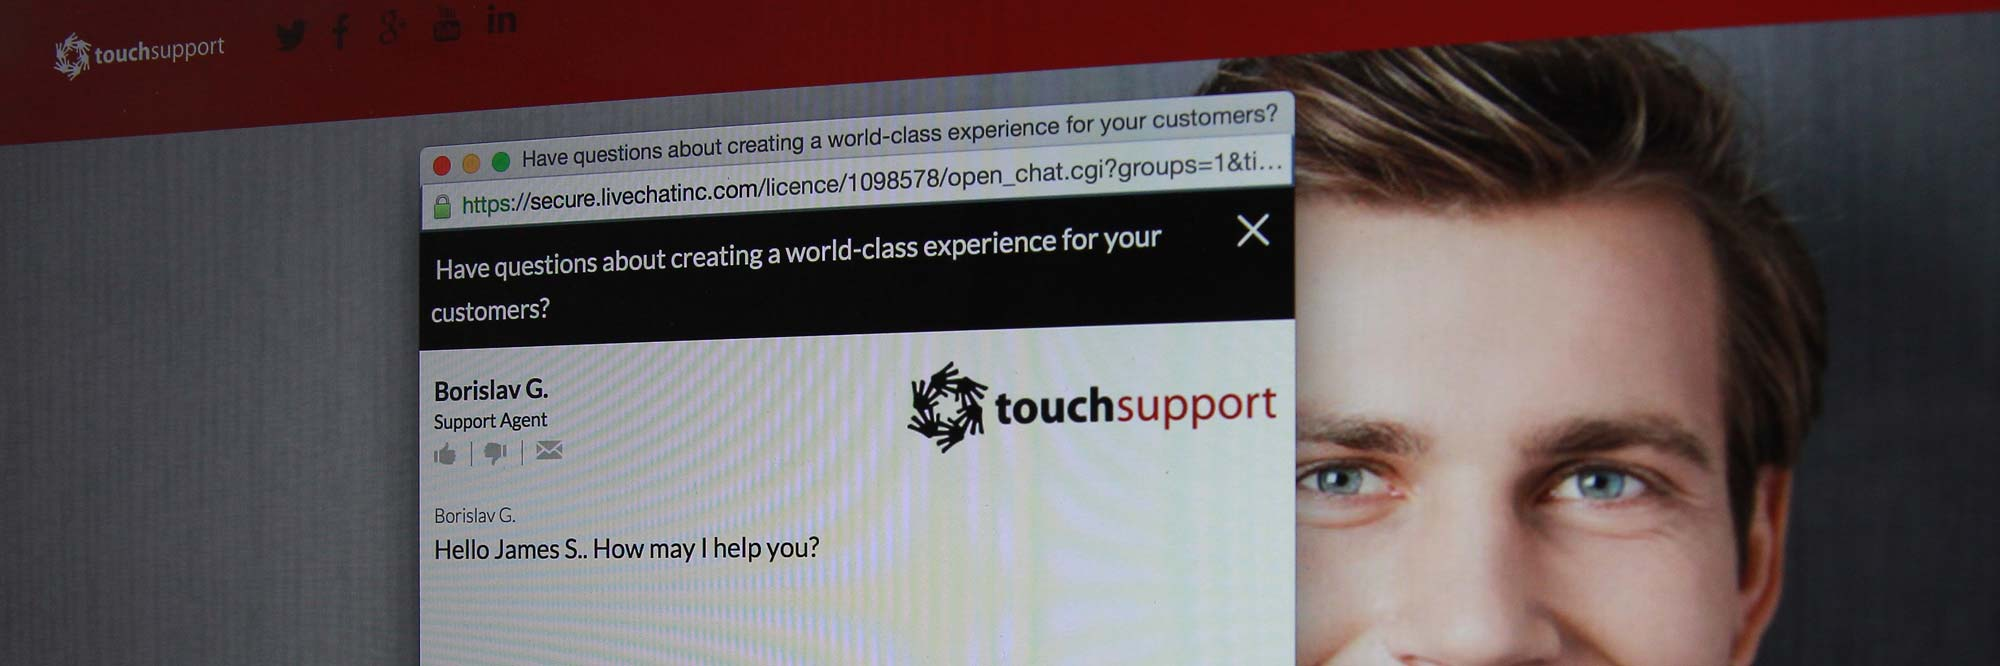 Touch Support